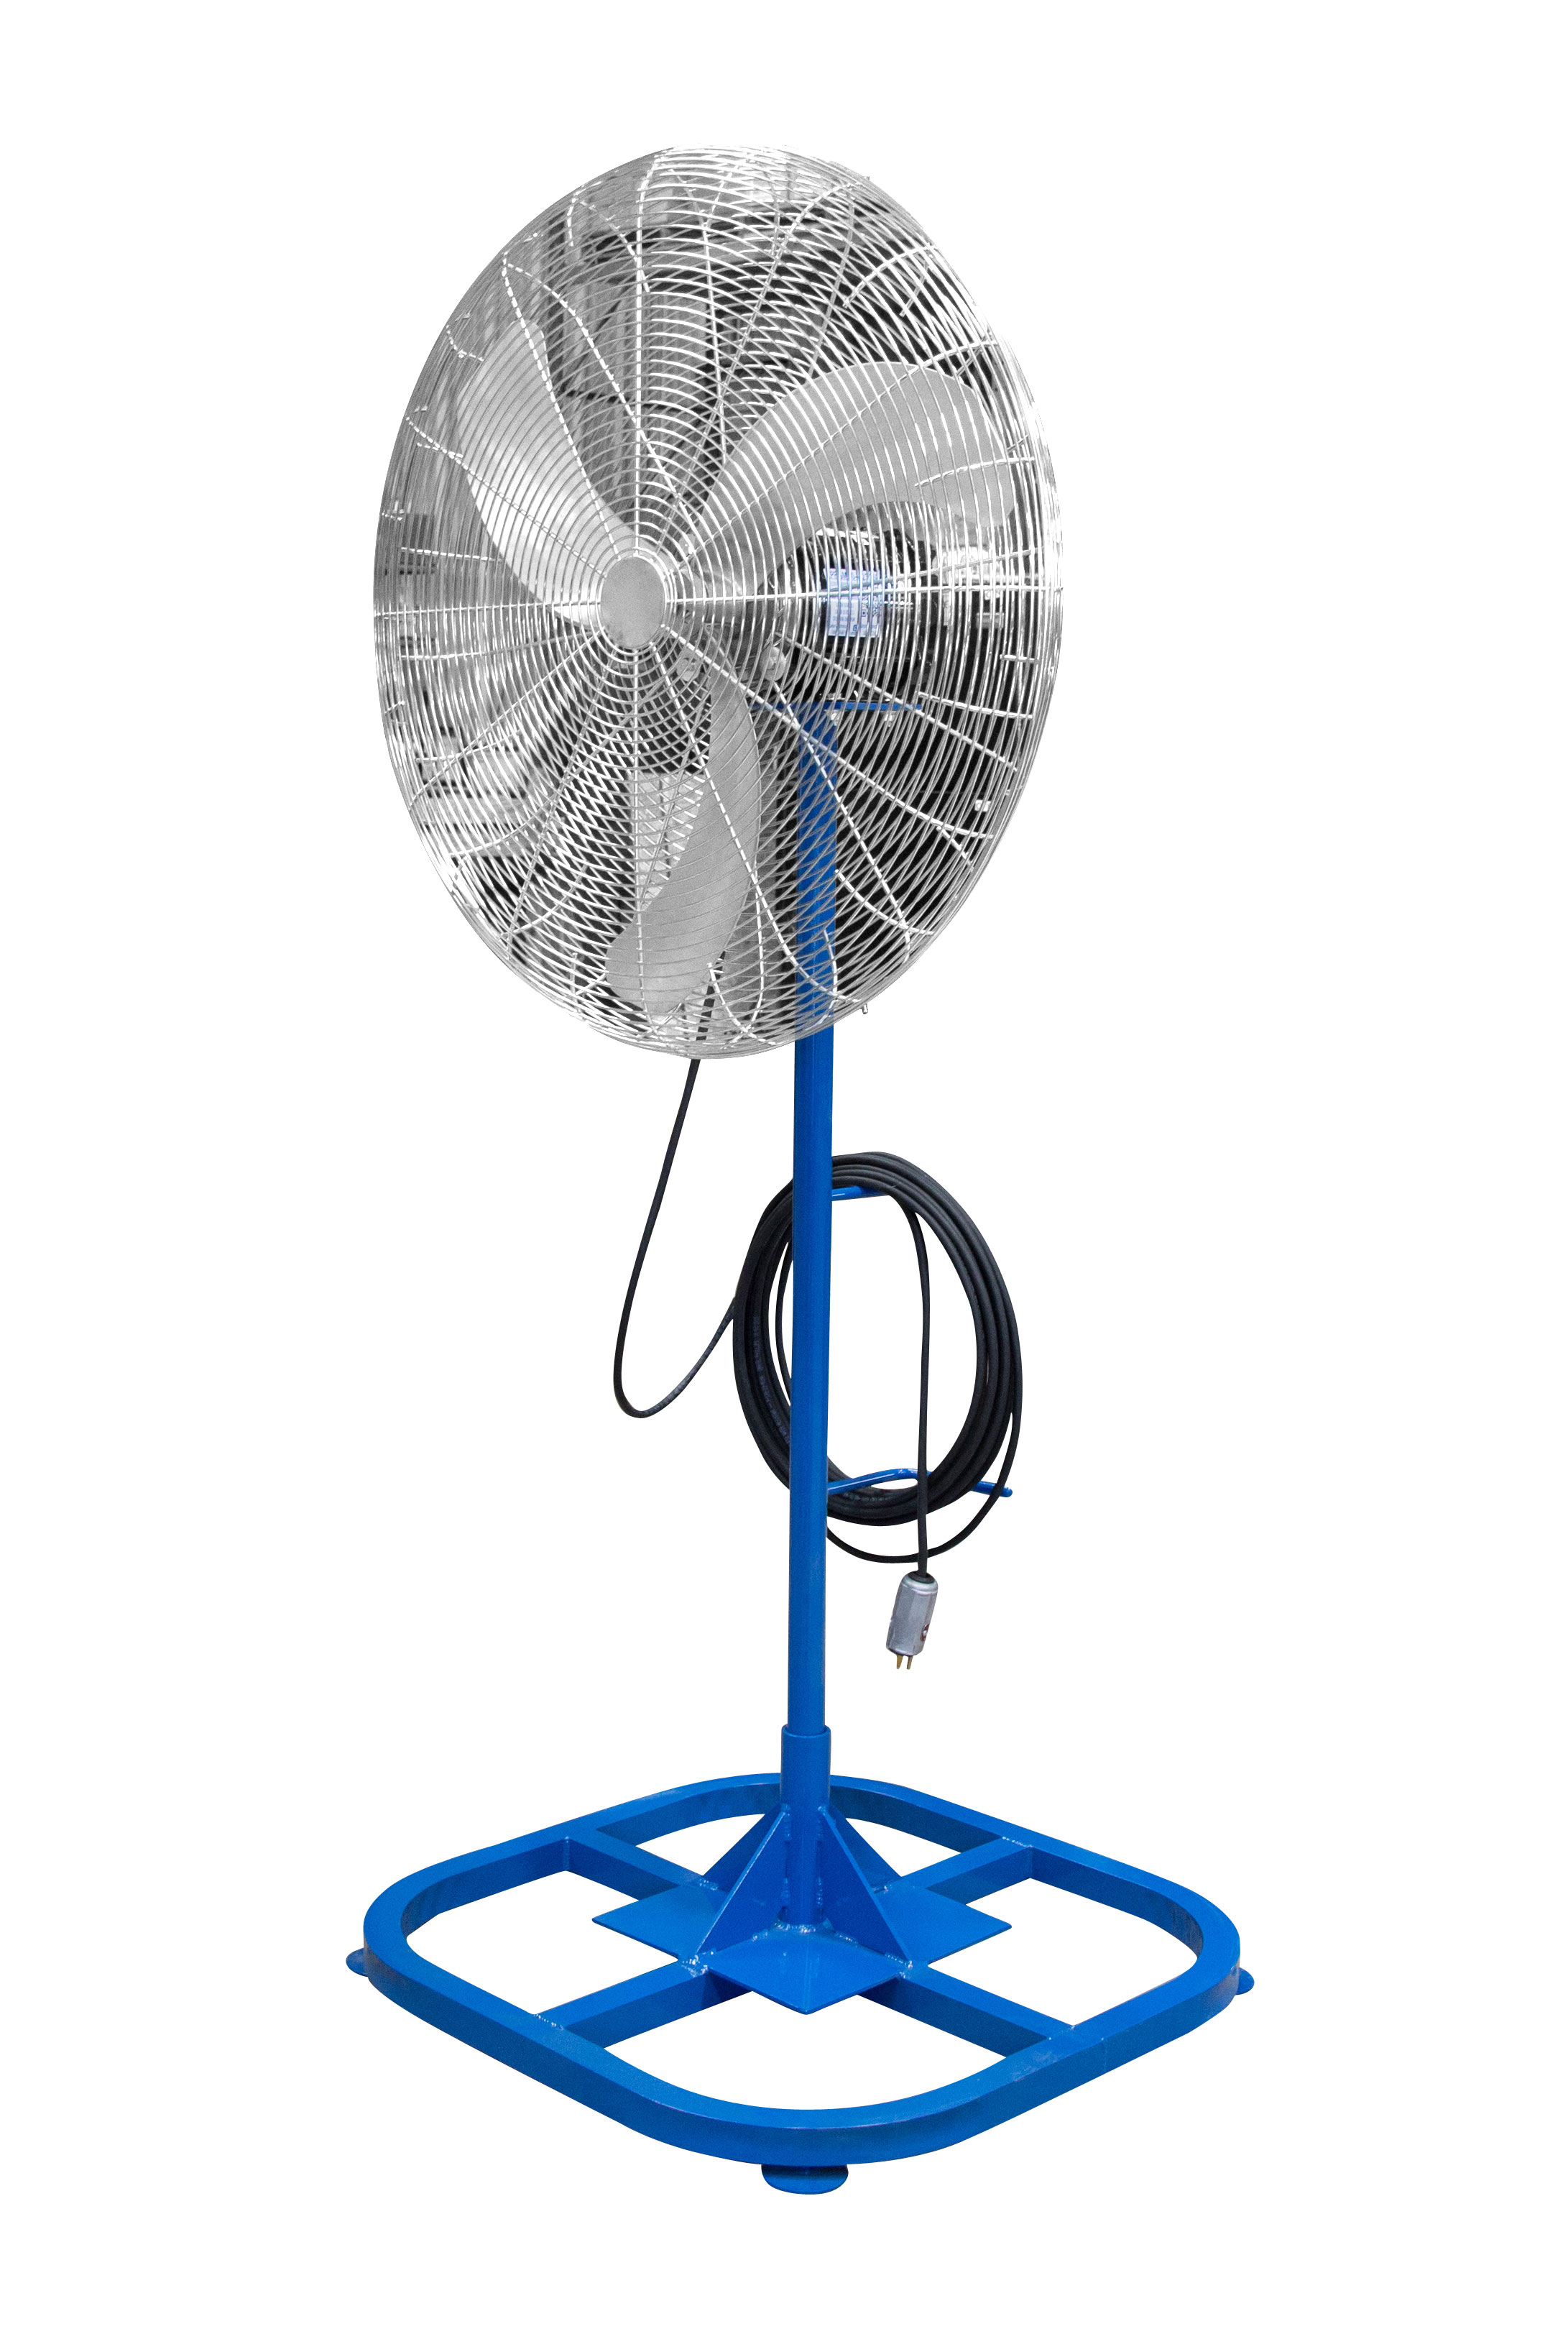 Explosion Proof Fan >> Larson Electronics Releases an Electric Explosion Proof ...